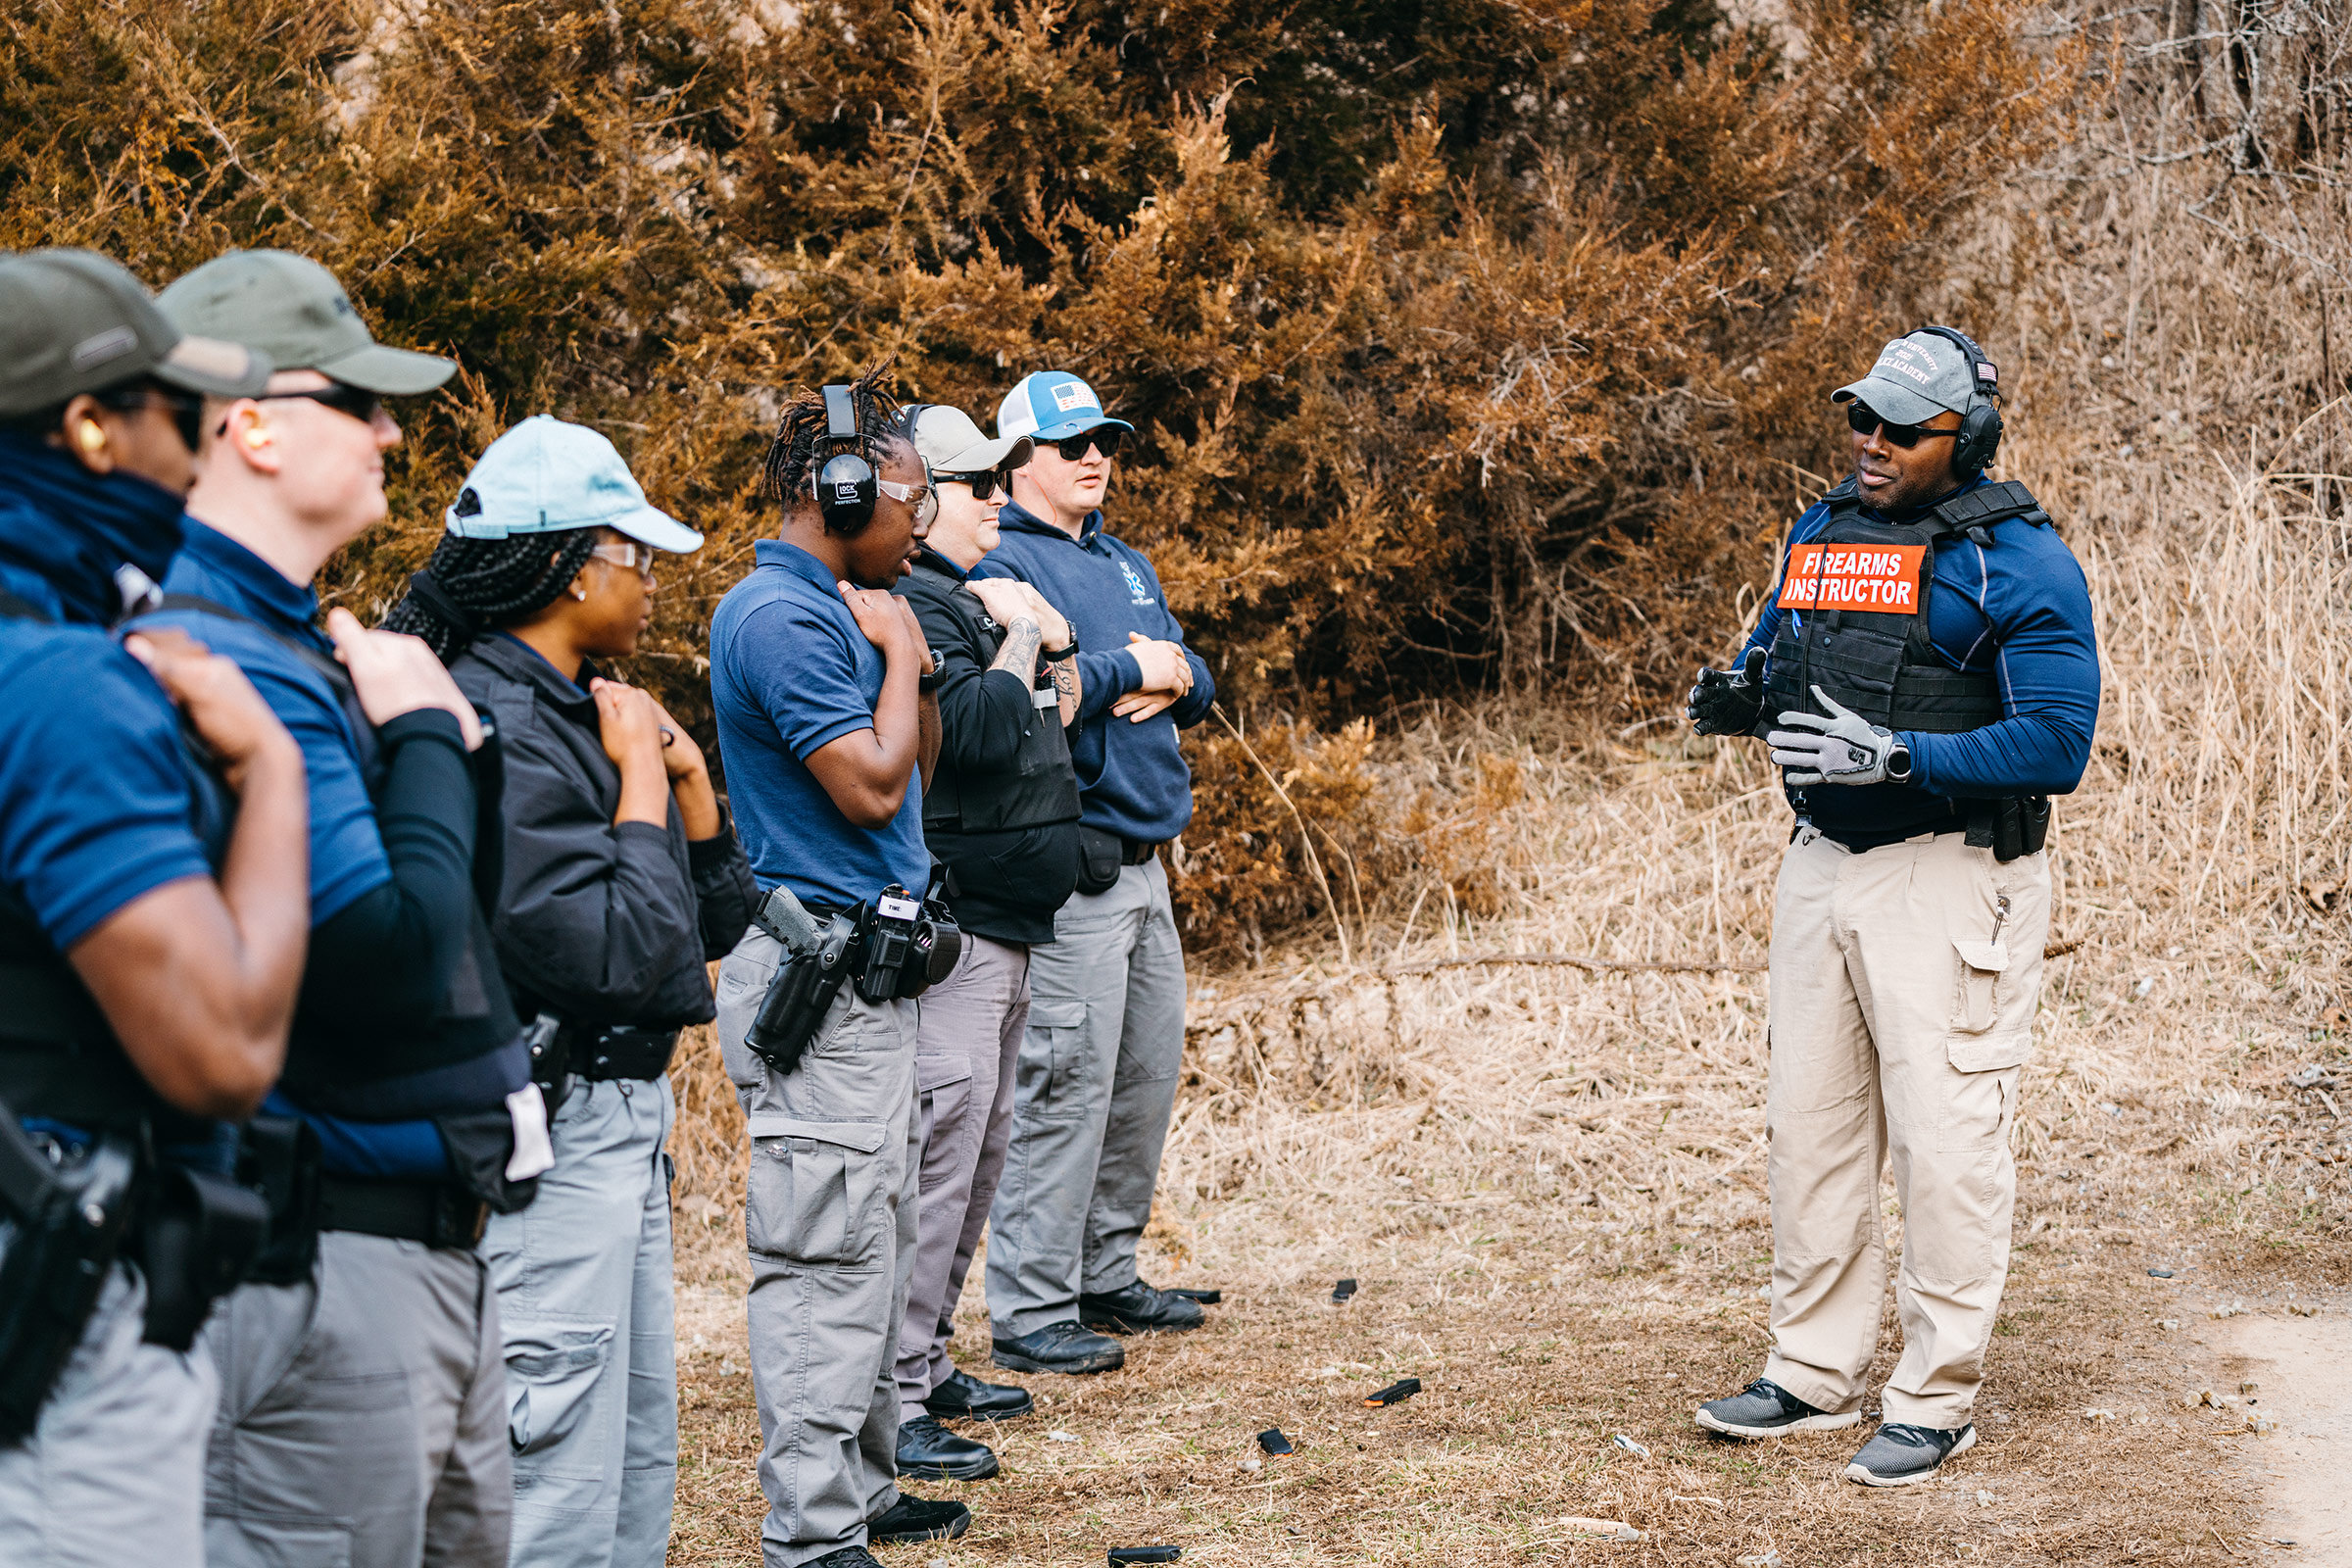 Lincoln University police chief Gary Hill prepares recruits for firearms training at a shooting range in Missouri on March 6